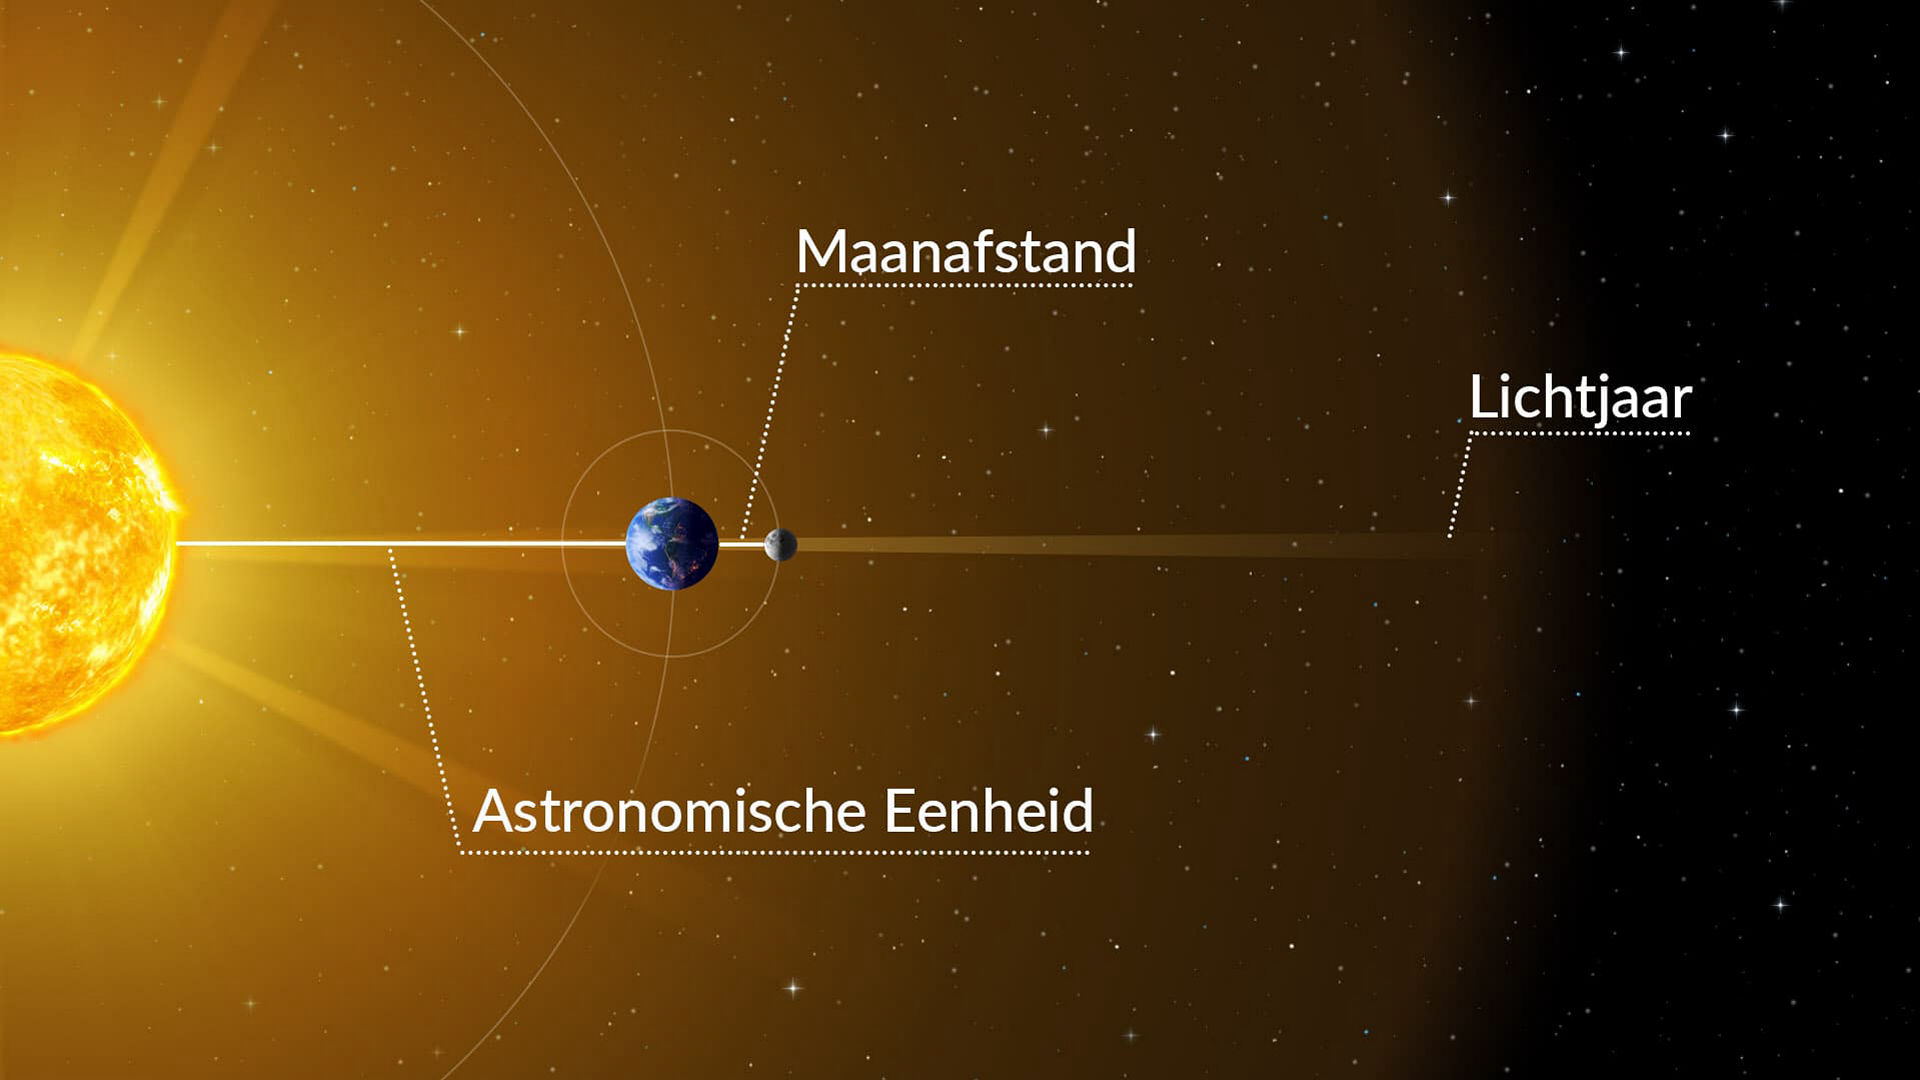 Units of distance used in astronomy